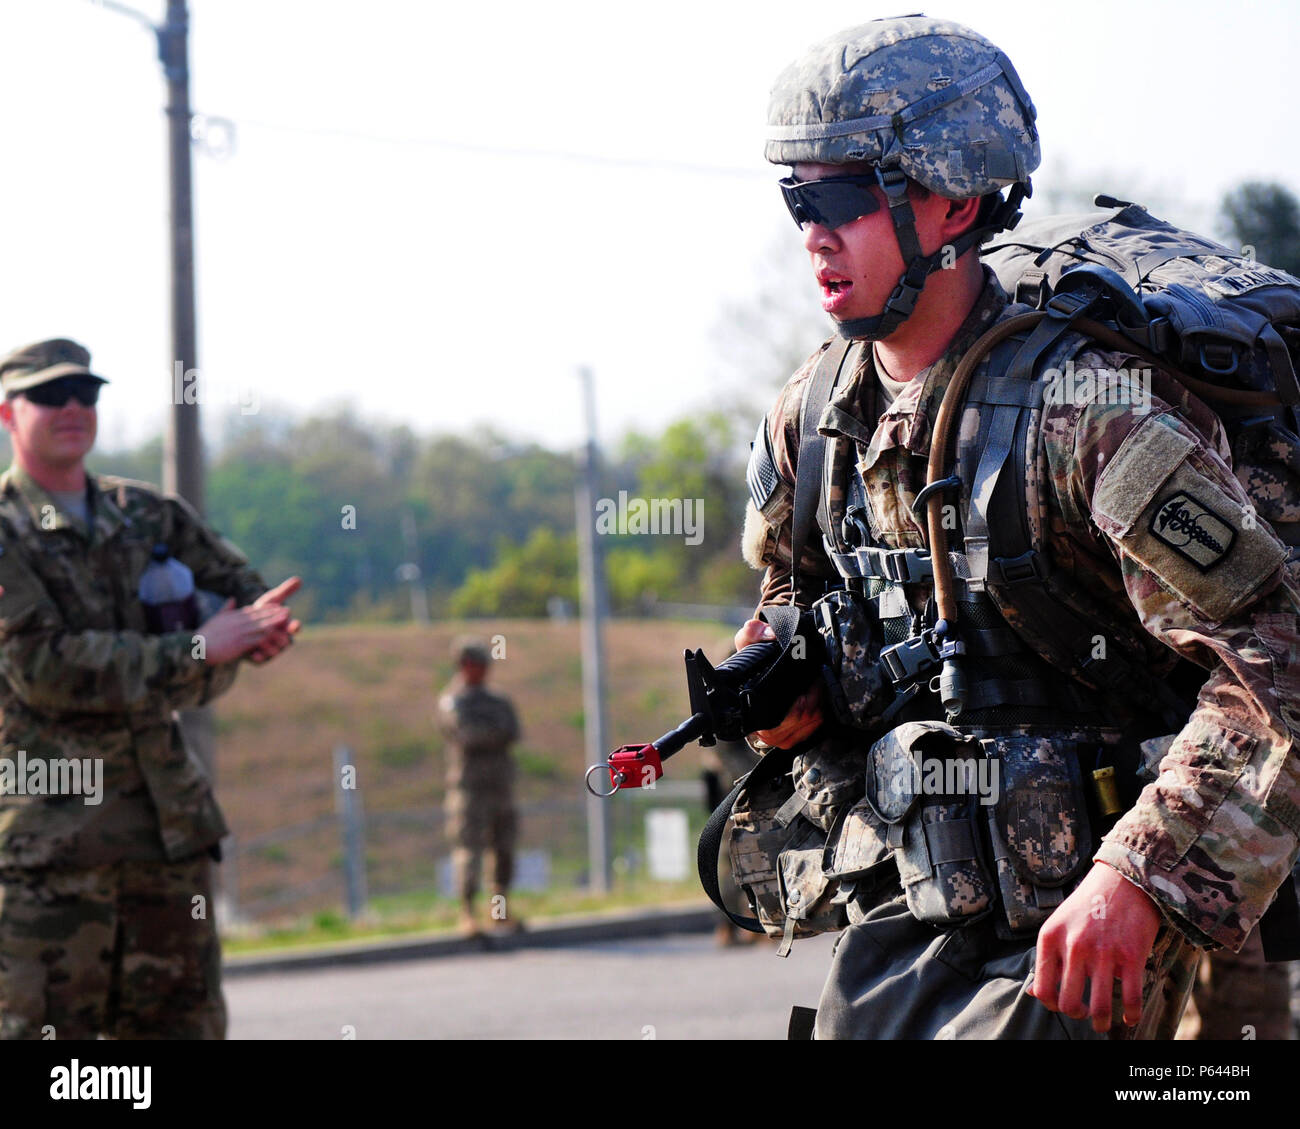 2nd Lt Huy Nguyen 65th Medical Brigade Completes The Final Portion Of 12 Mile Ruck March At Warrior Base Near Panmunjeom South Korea Apr 292016